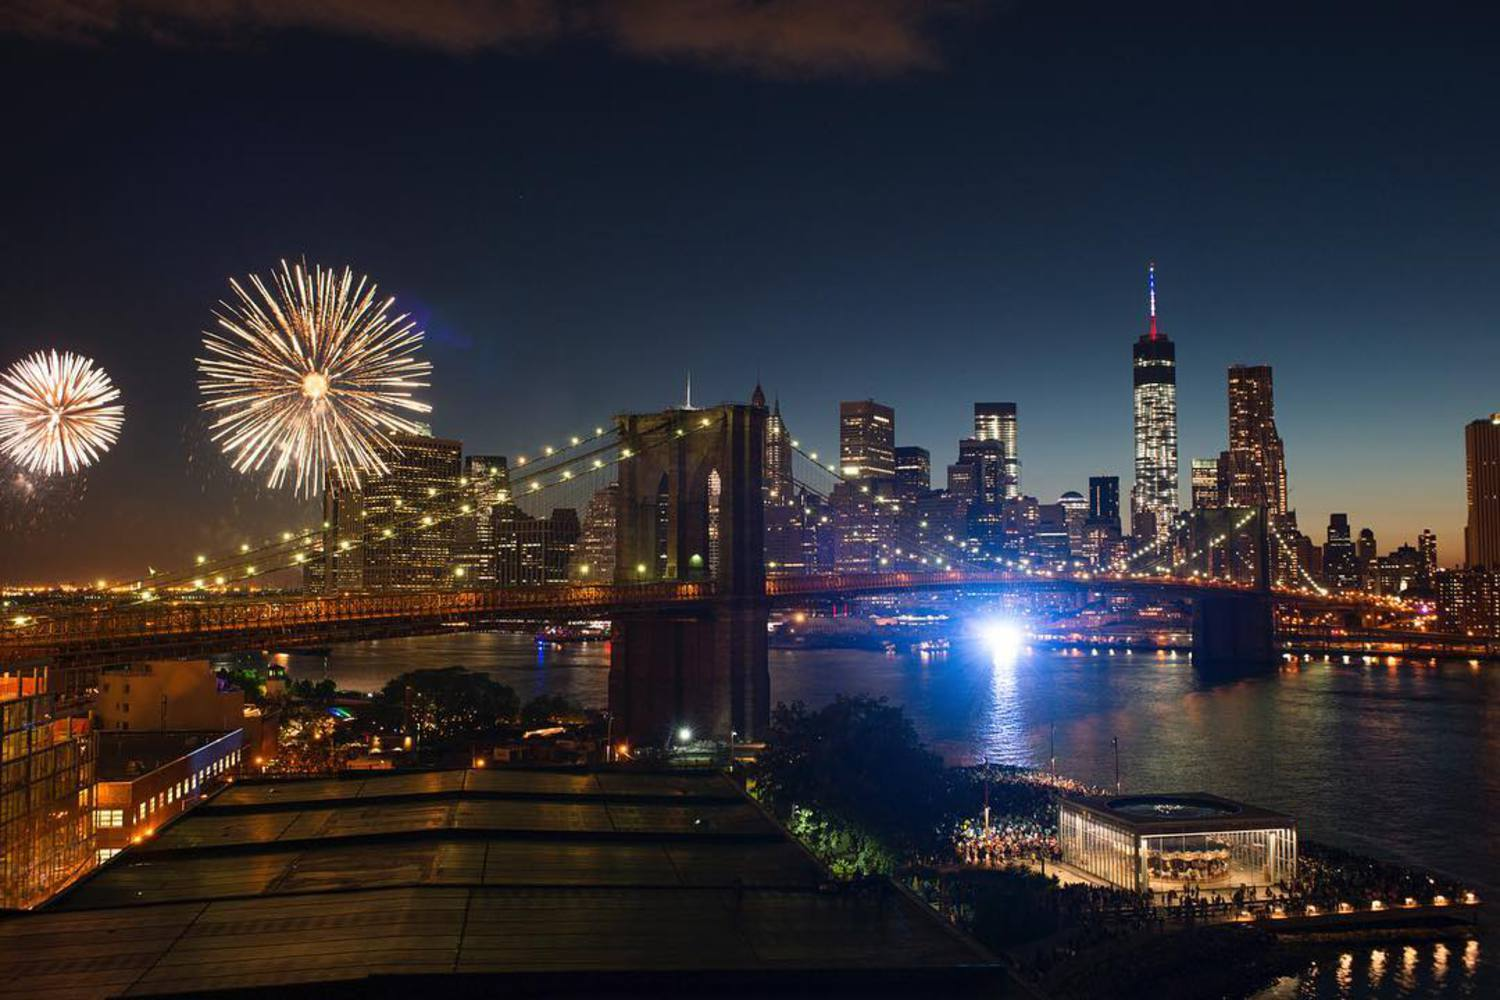 Last year's fireworks over the East River. Happy #FourthOfJuly! #ILoveNY